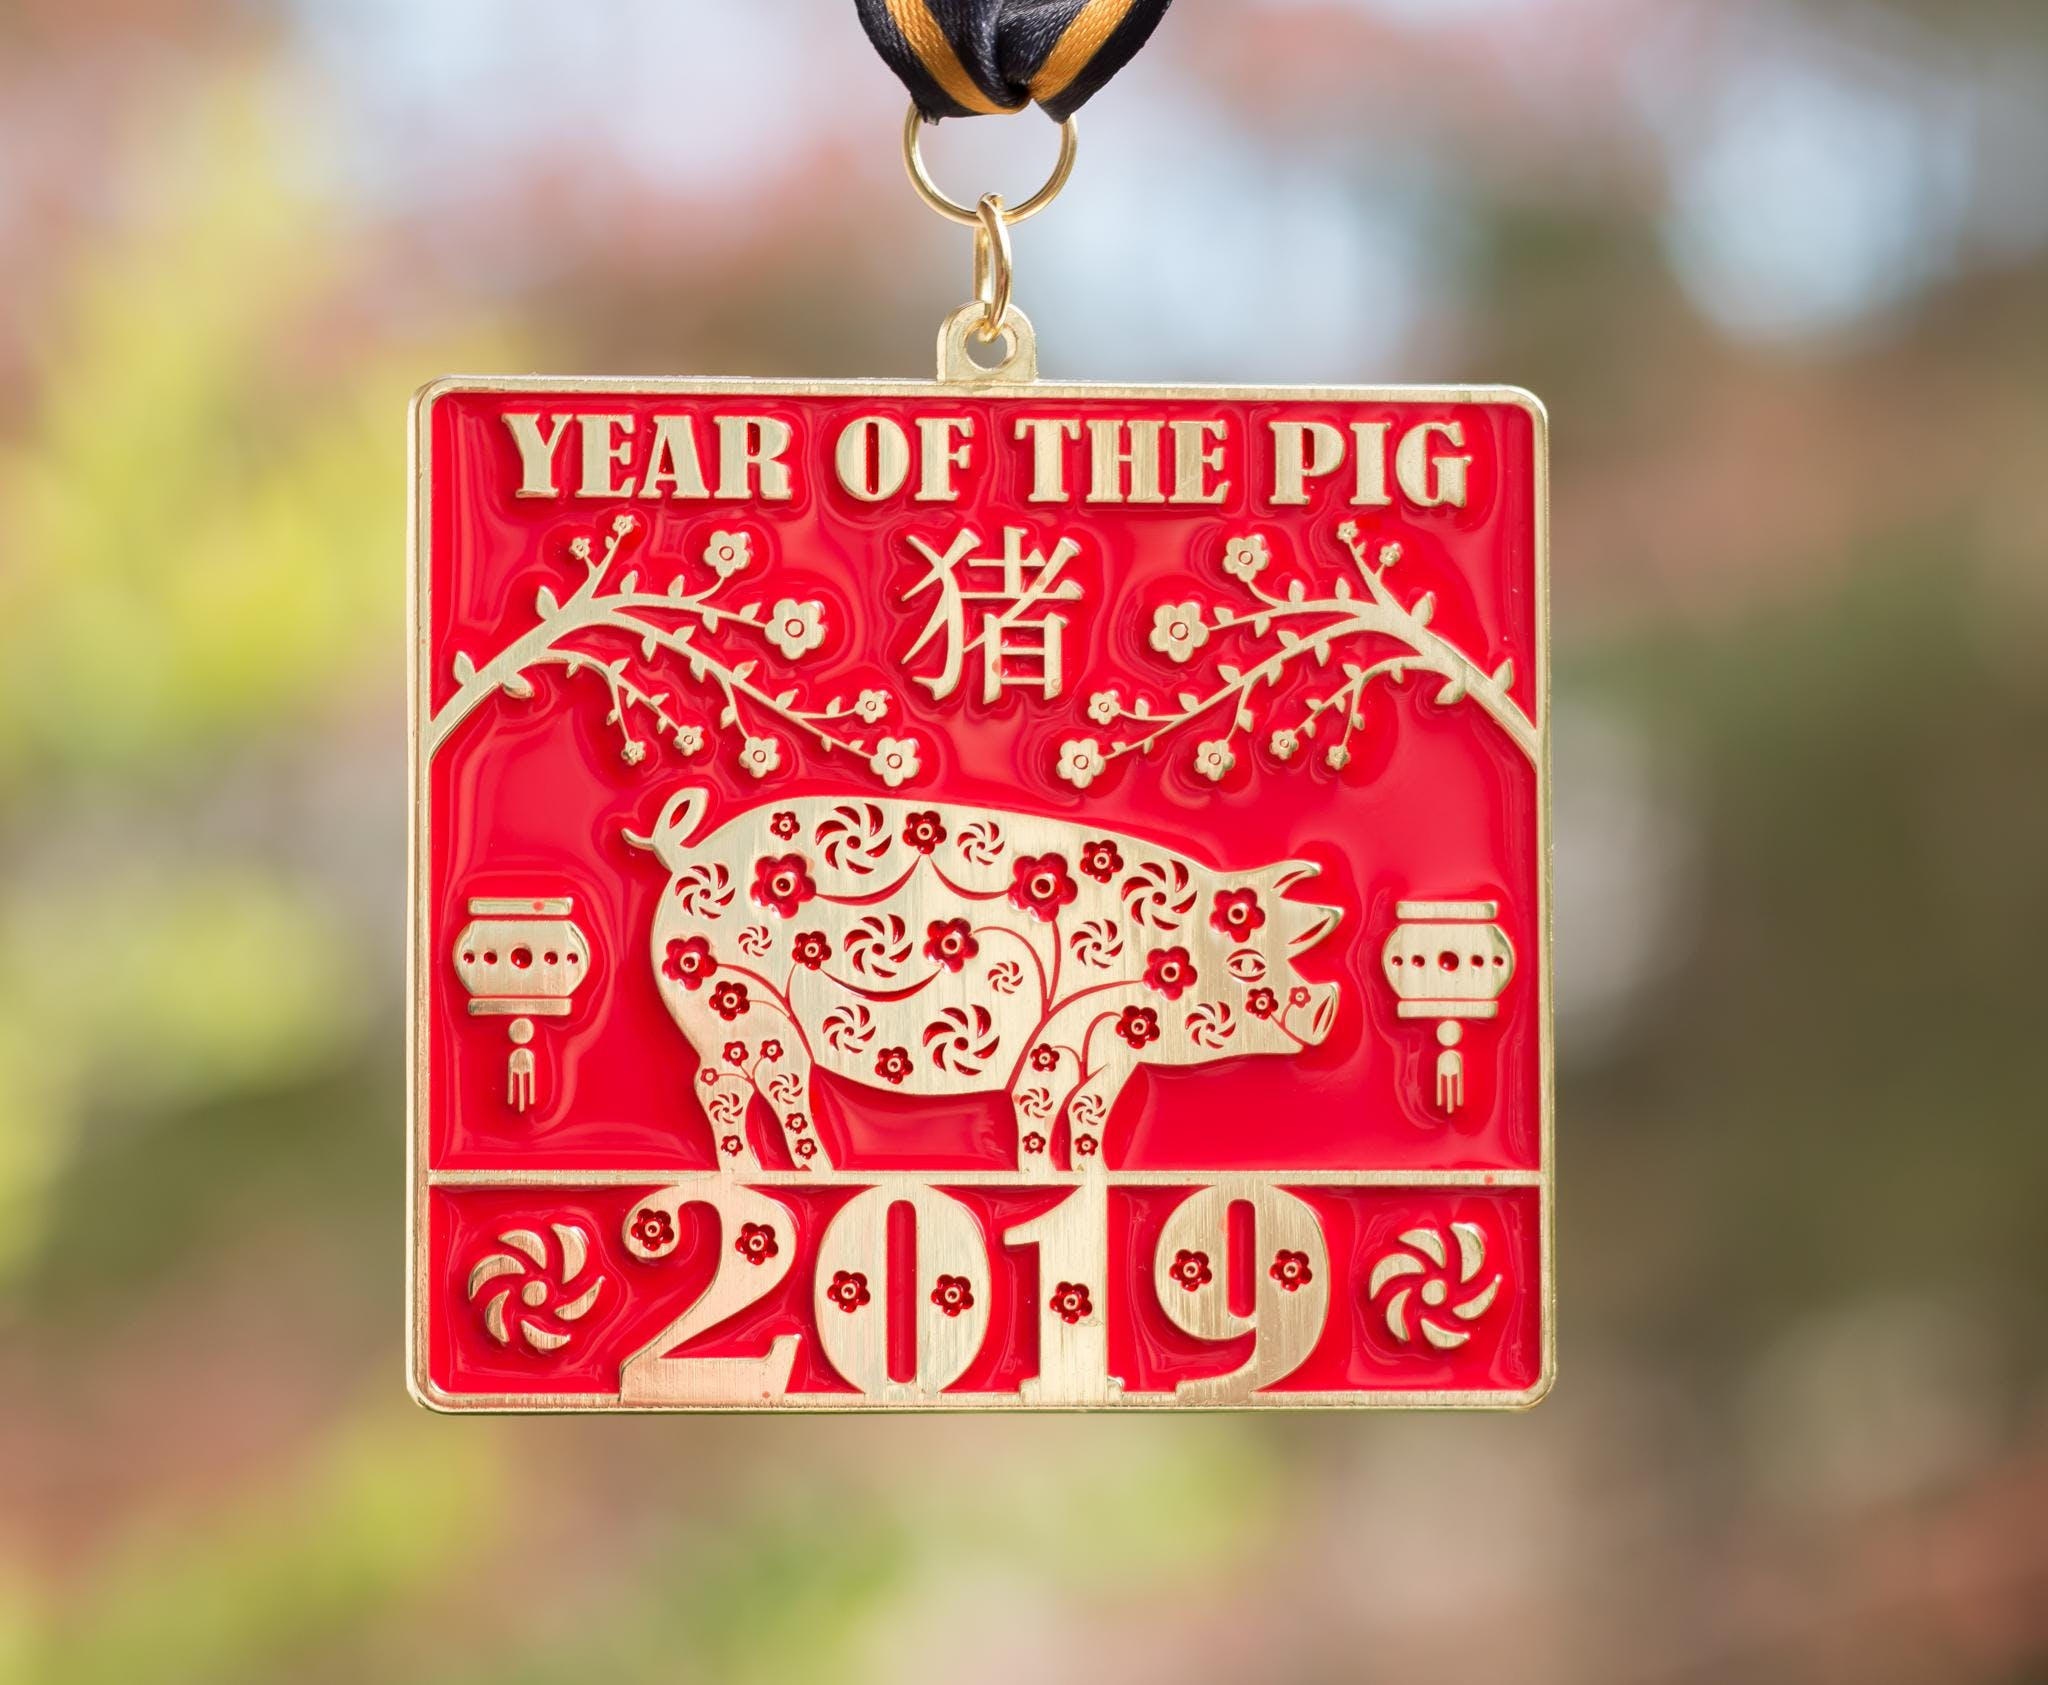 New Year Running and Walking Challenge-Year of the Pig - New York